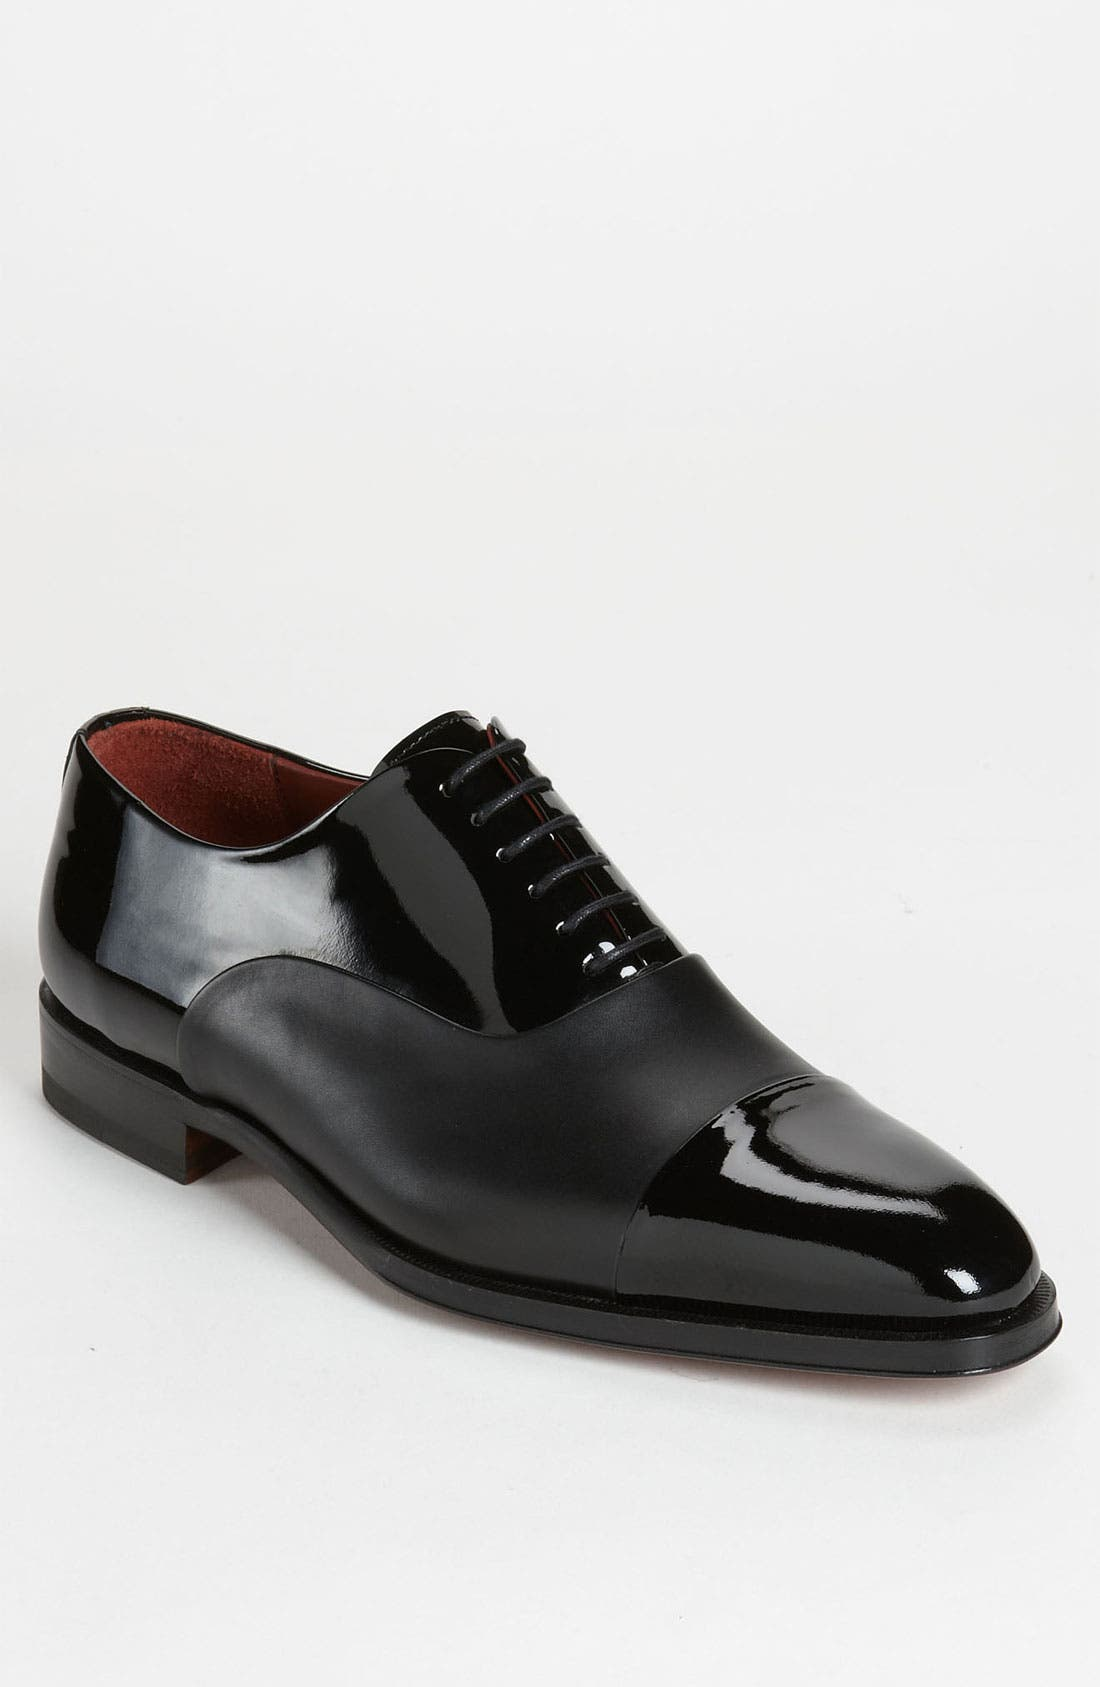 MAGNANNI, Cesar Cap Toe Oxford, Main thumbnail 1, color, BLACK